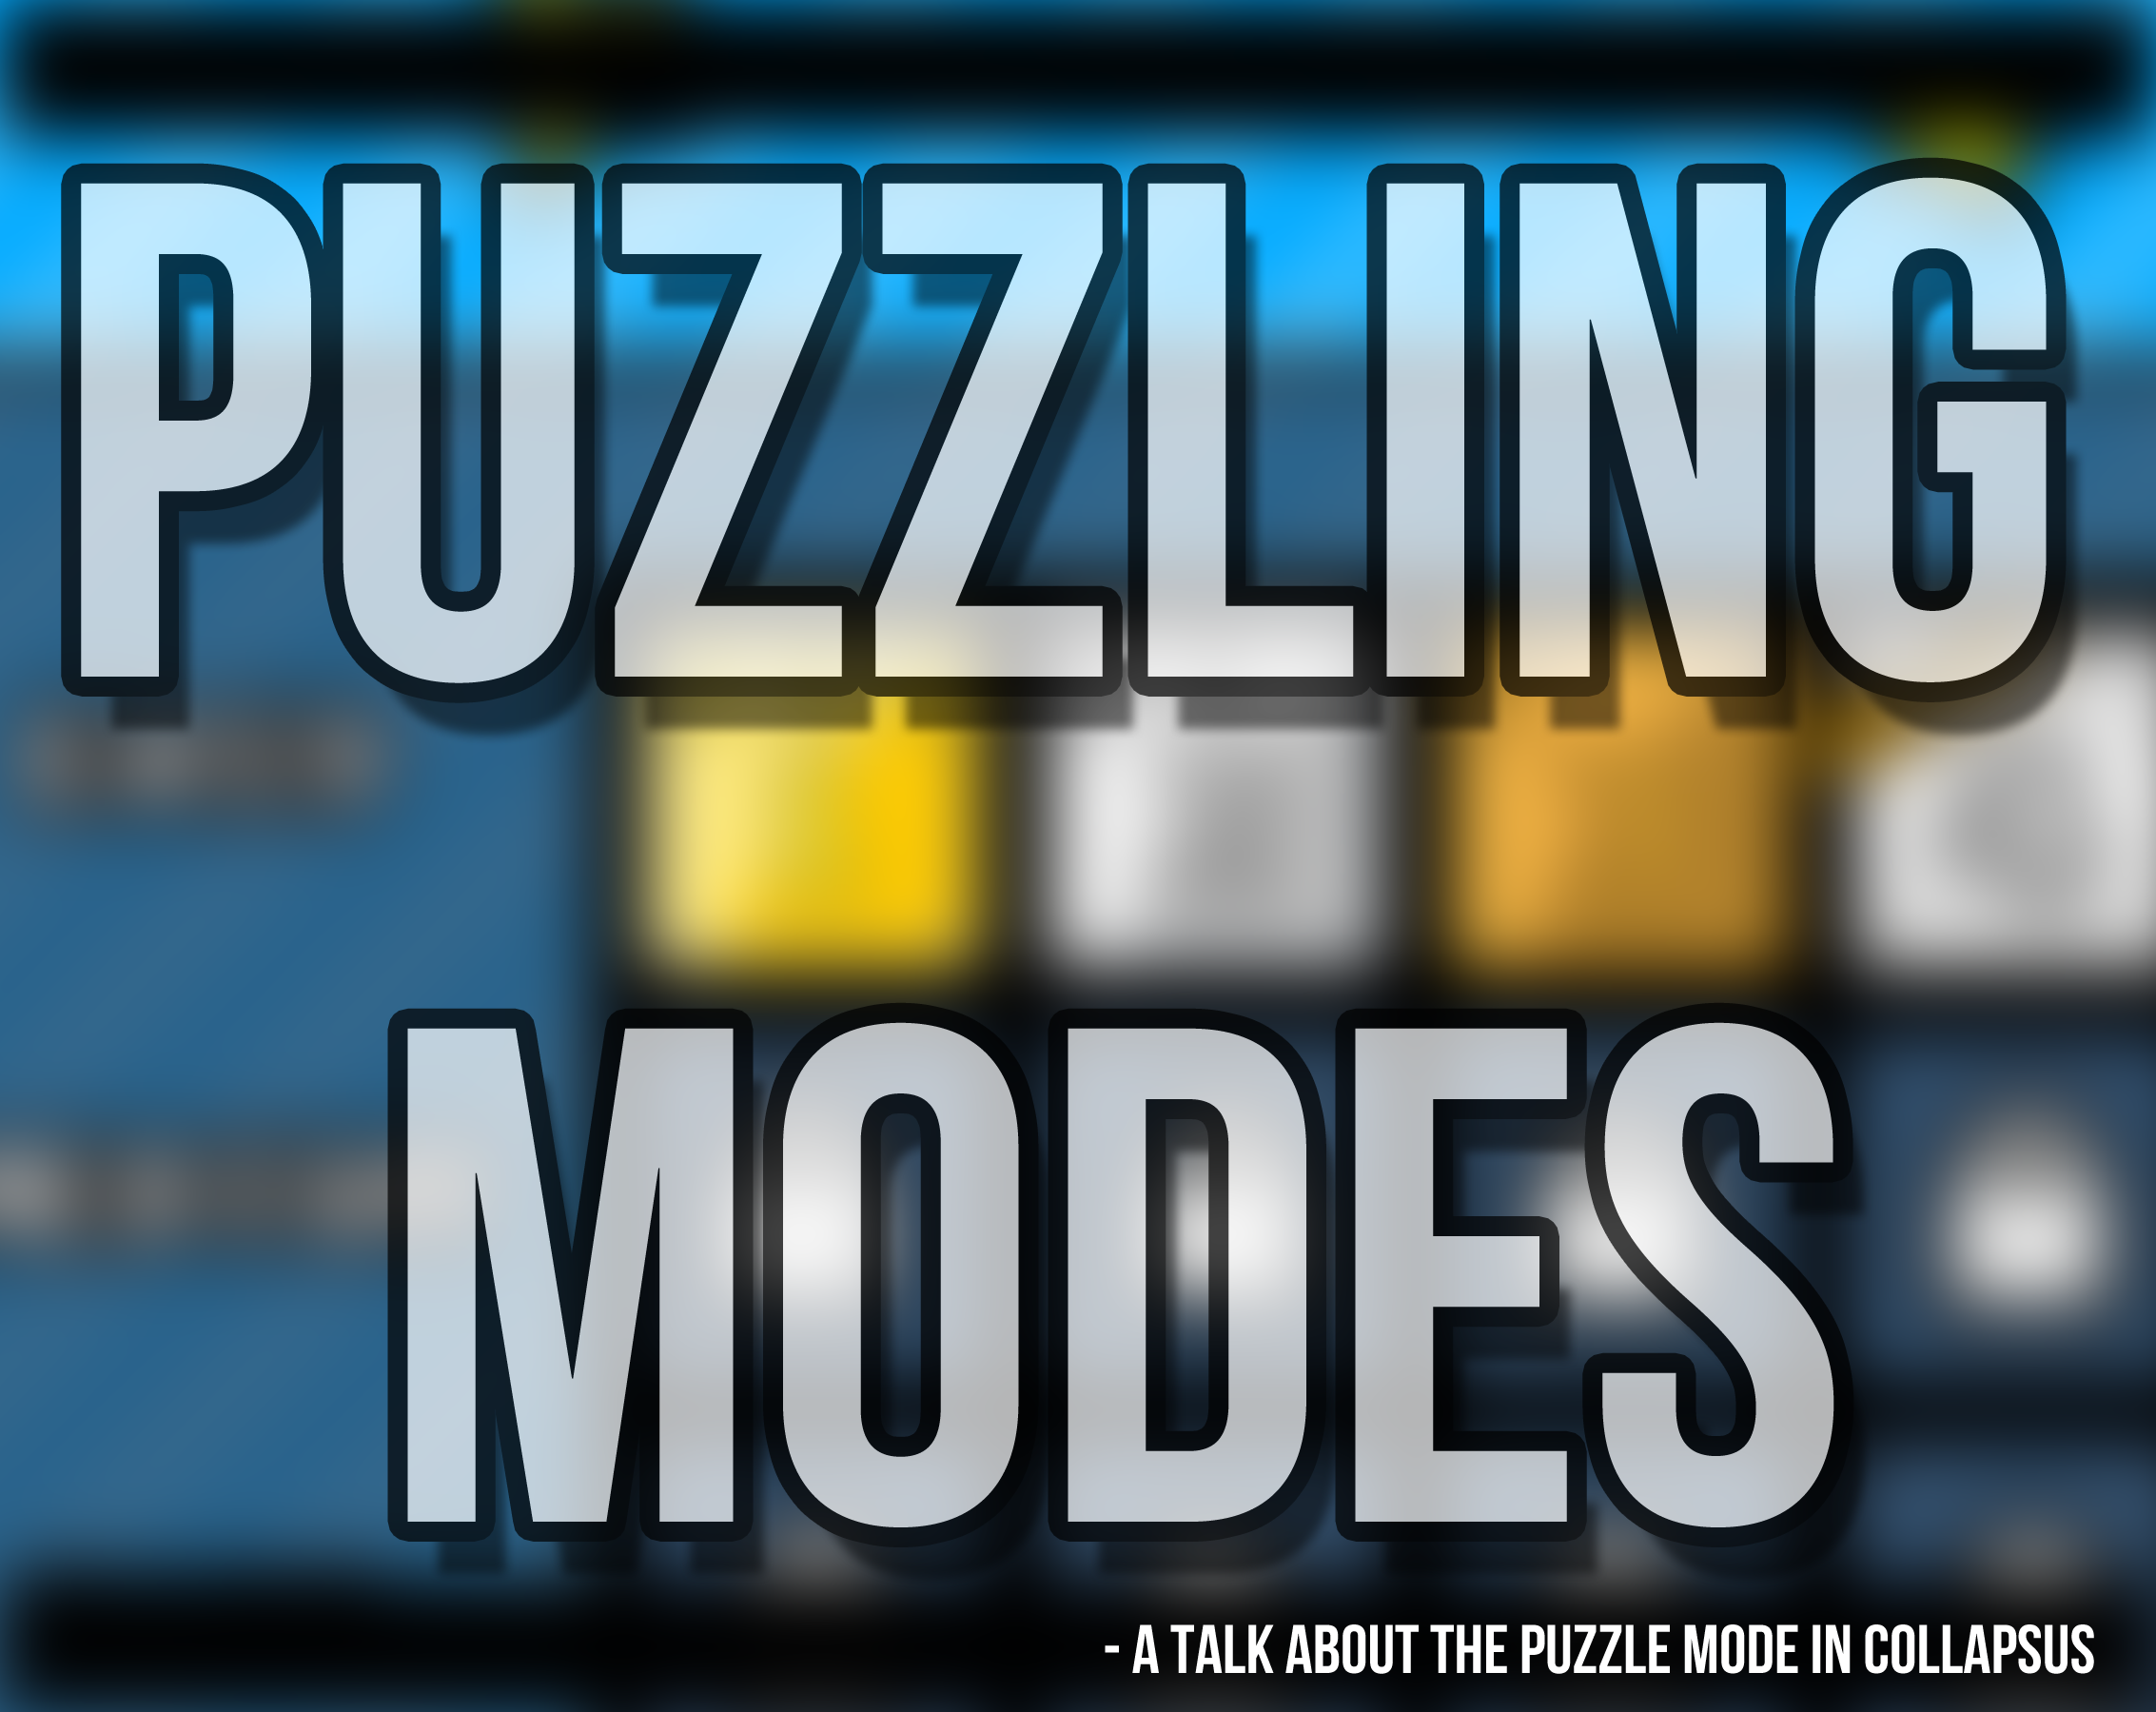 puzzling modes a talk about the puzzle mode in collapsus